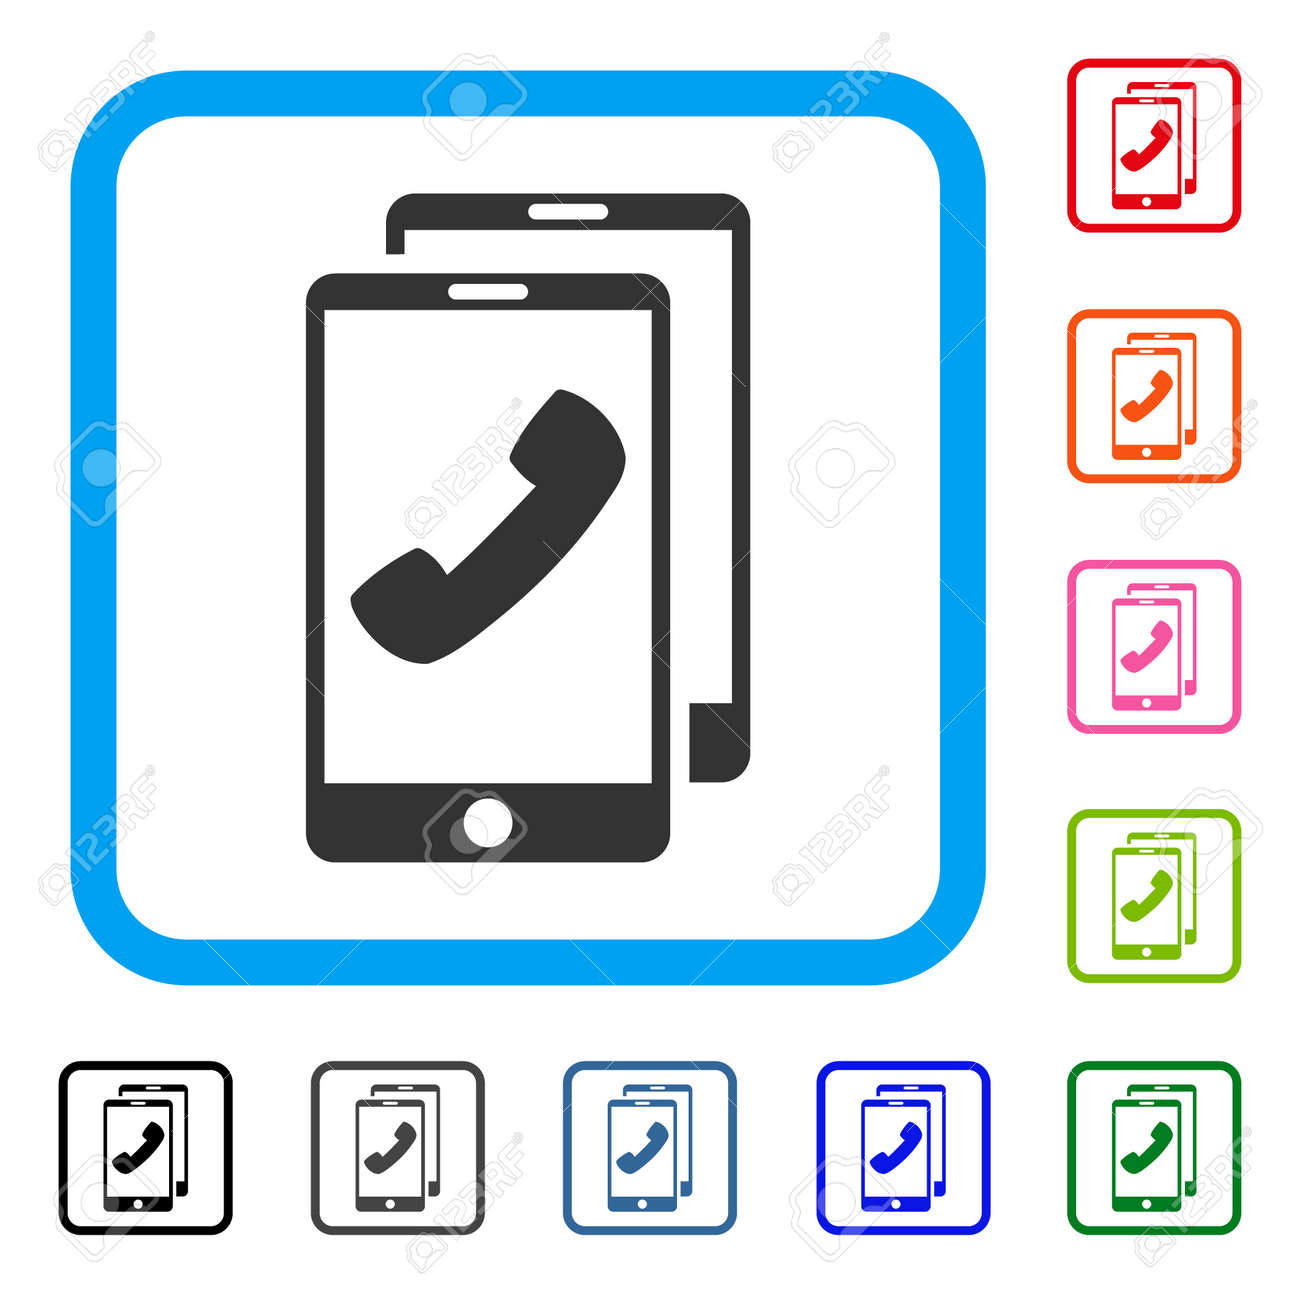 Cell Phones Icon Flat Grey Iconic Symbol Inside A Blue Rounded